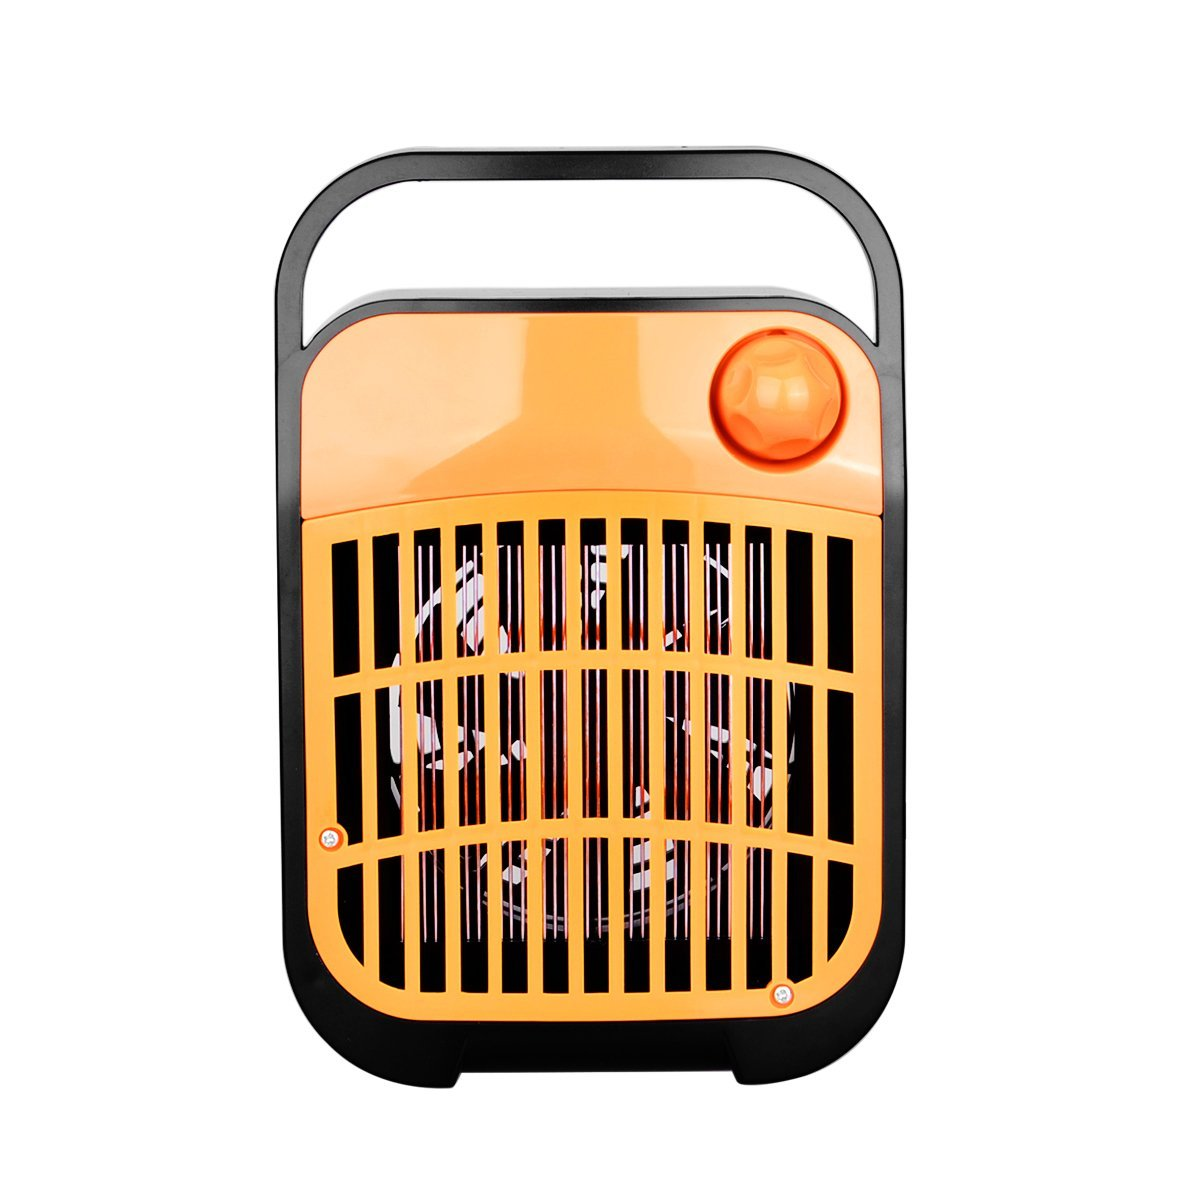 Cheap Commercial Mosquito Find Deals On Line At Killerelectric Killerinsect Killermosquito Get Quotations Lemonda Household Powerful Radiationless Quiet Bug Zapper Killer Trap Lamp Light Electronic Insect